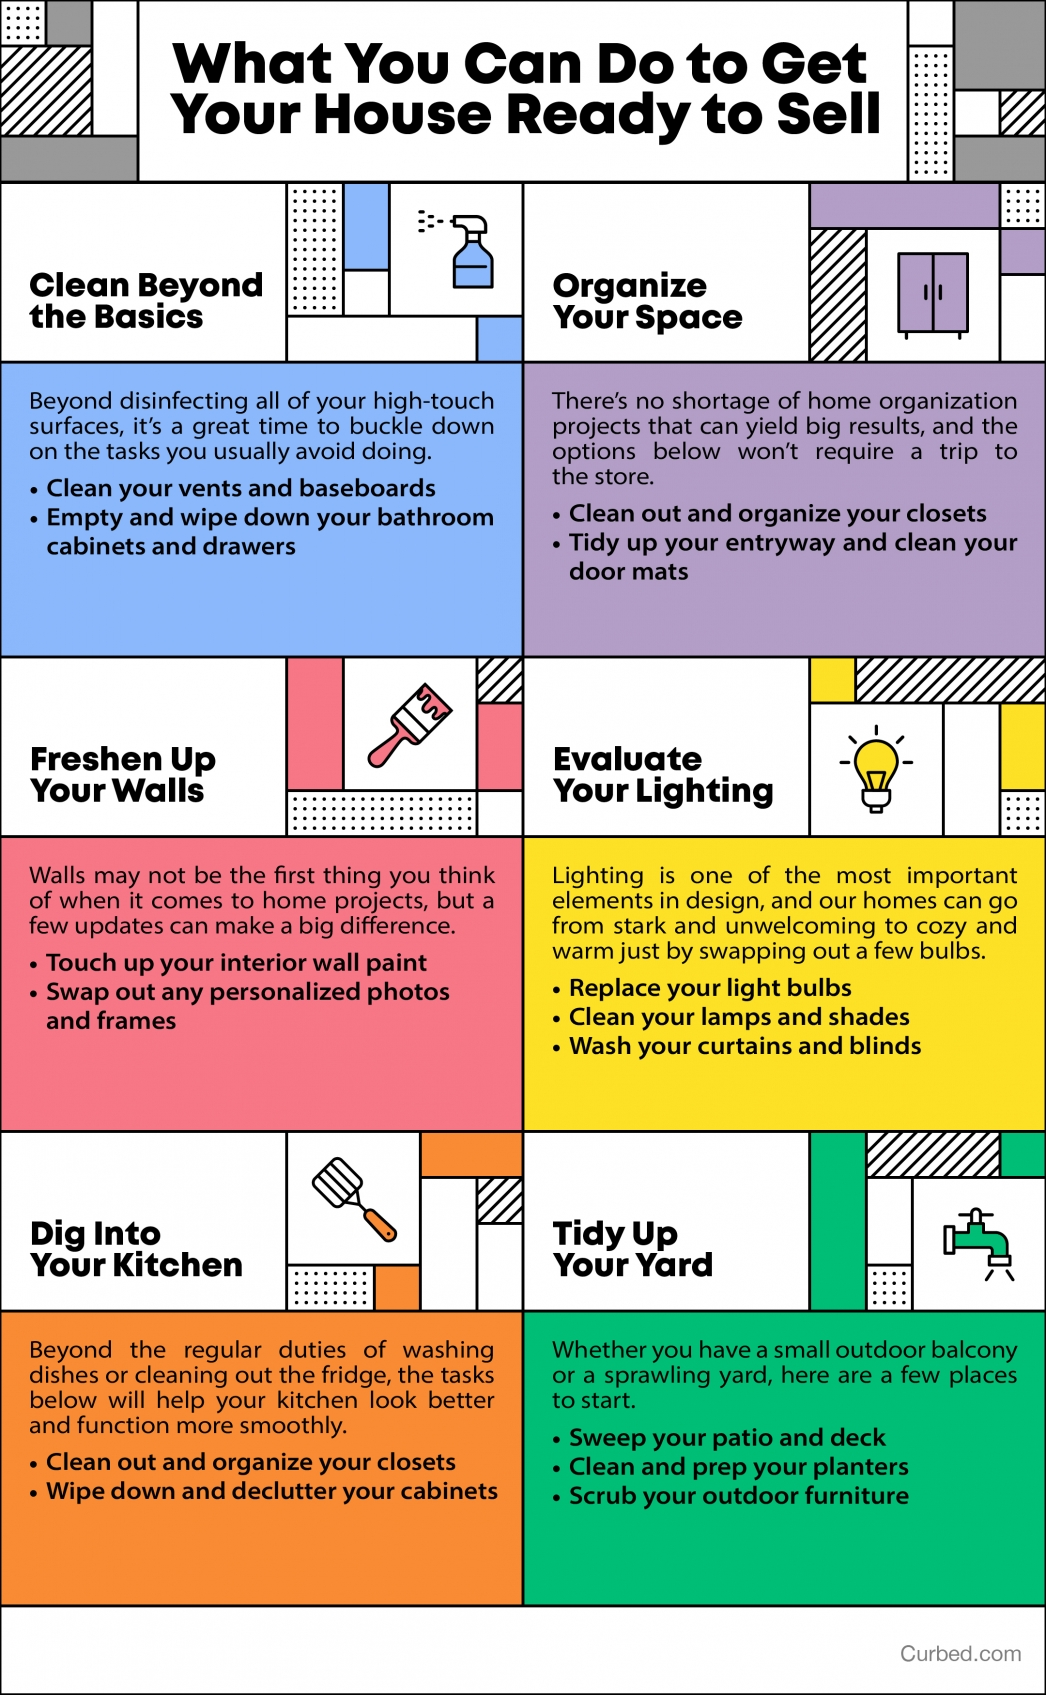 What You Can Do to Get Your House Ready to Sell | MyKCM